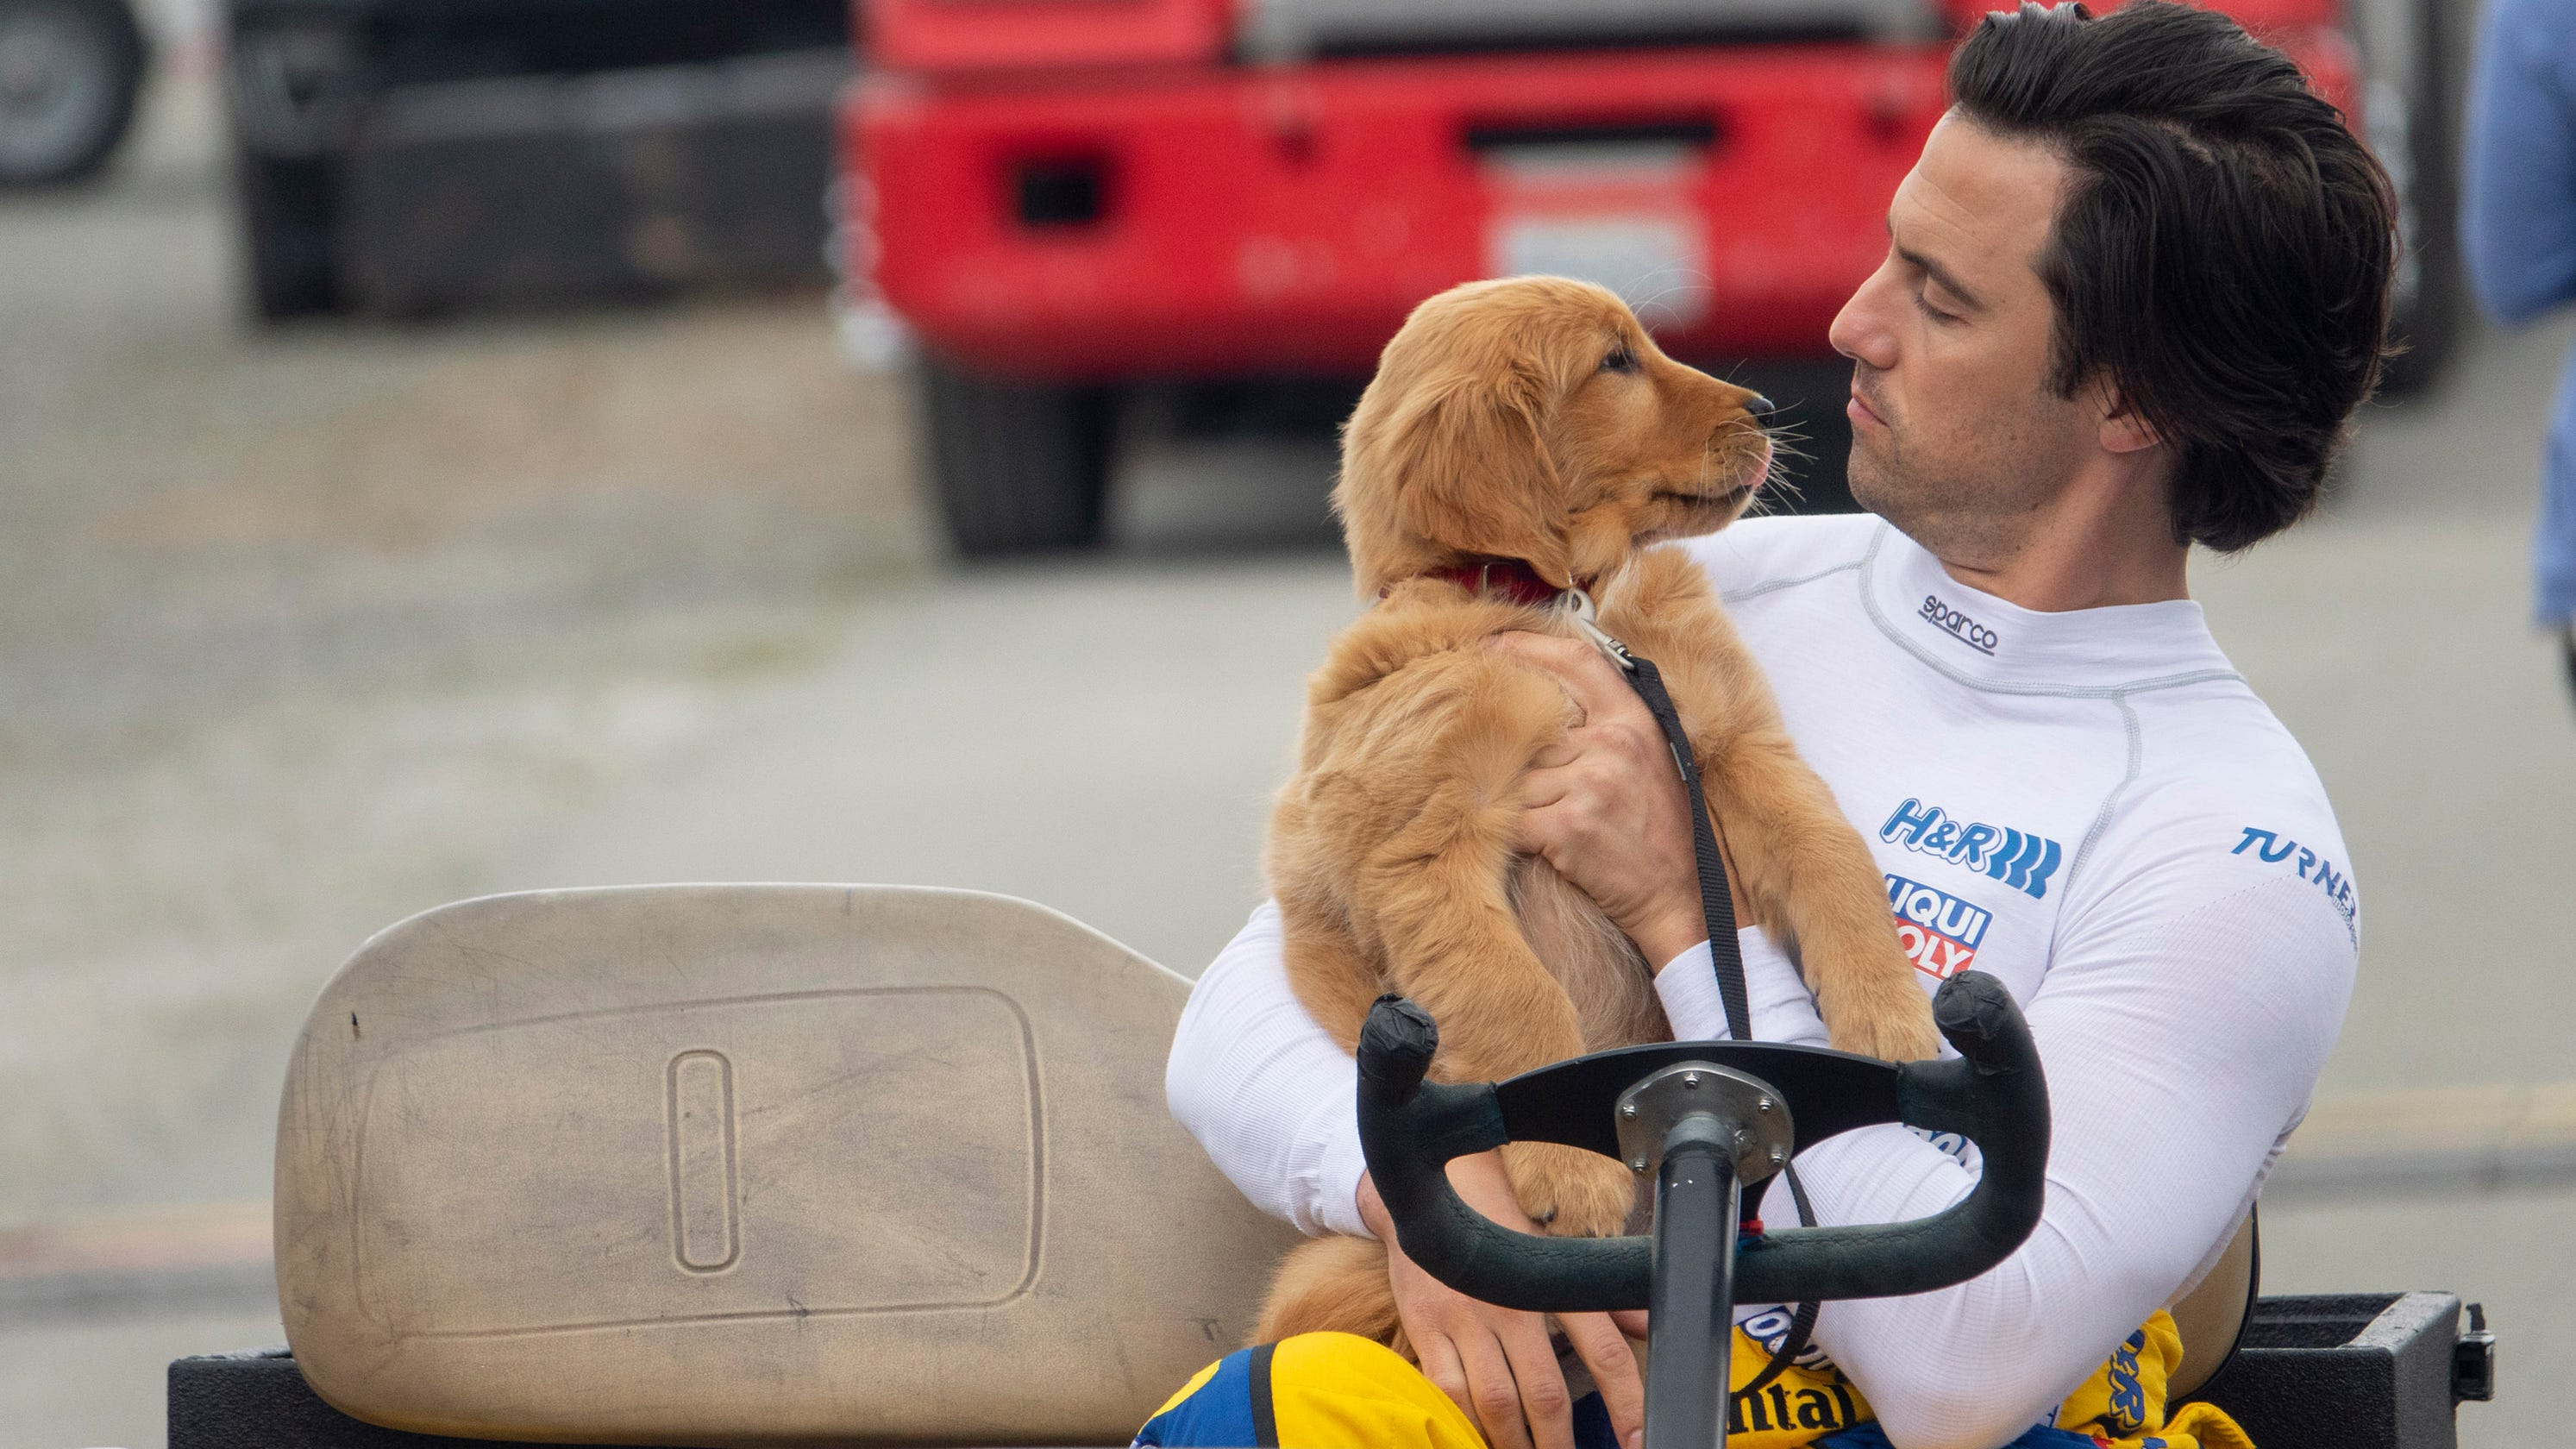 The Art of Racing in the Rain': This dog movie will have you